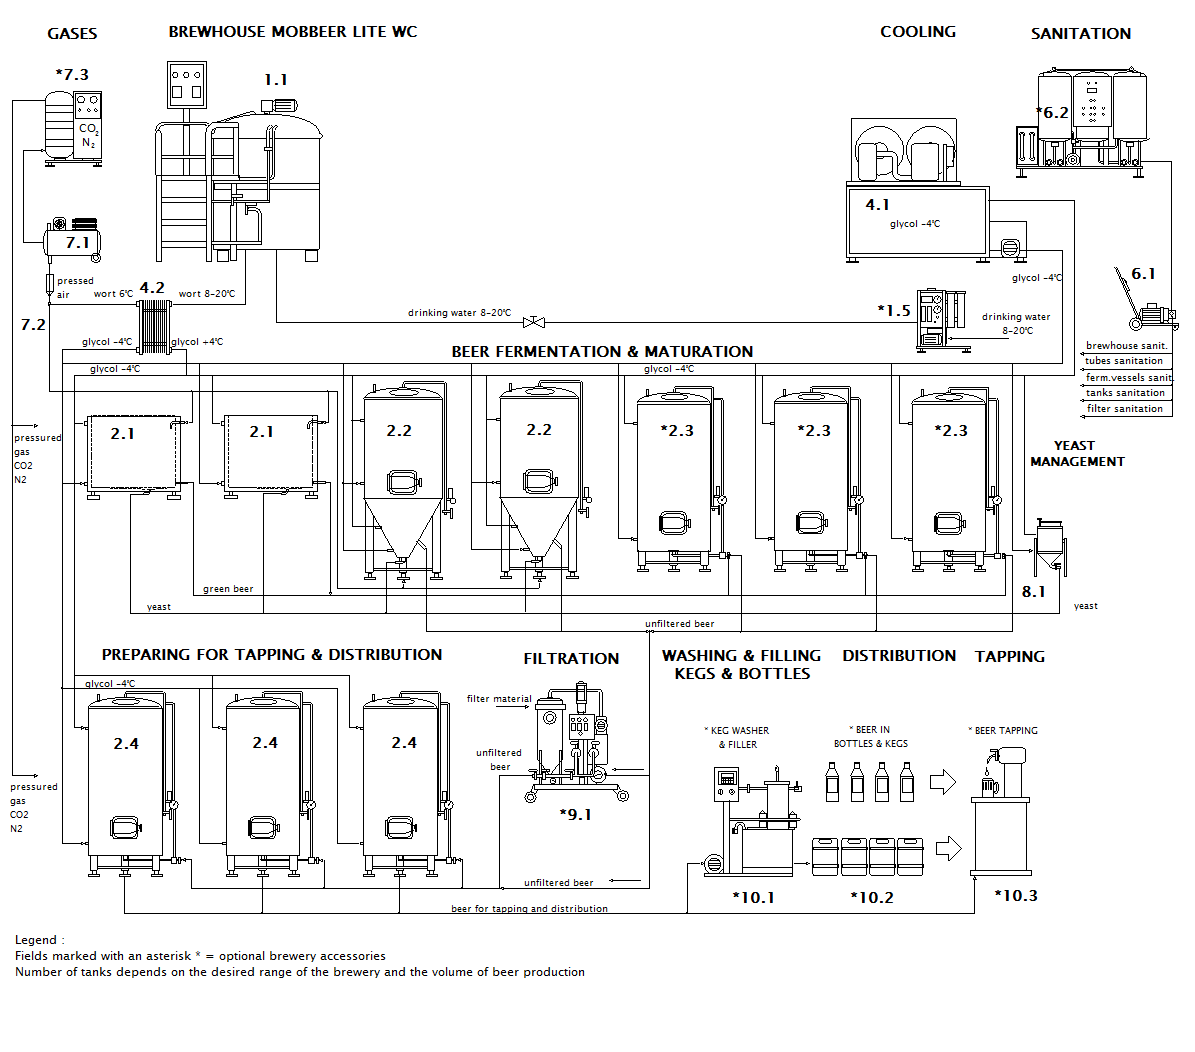 scheme of the container microbrewery MOBBEER LITE WC OCF